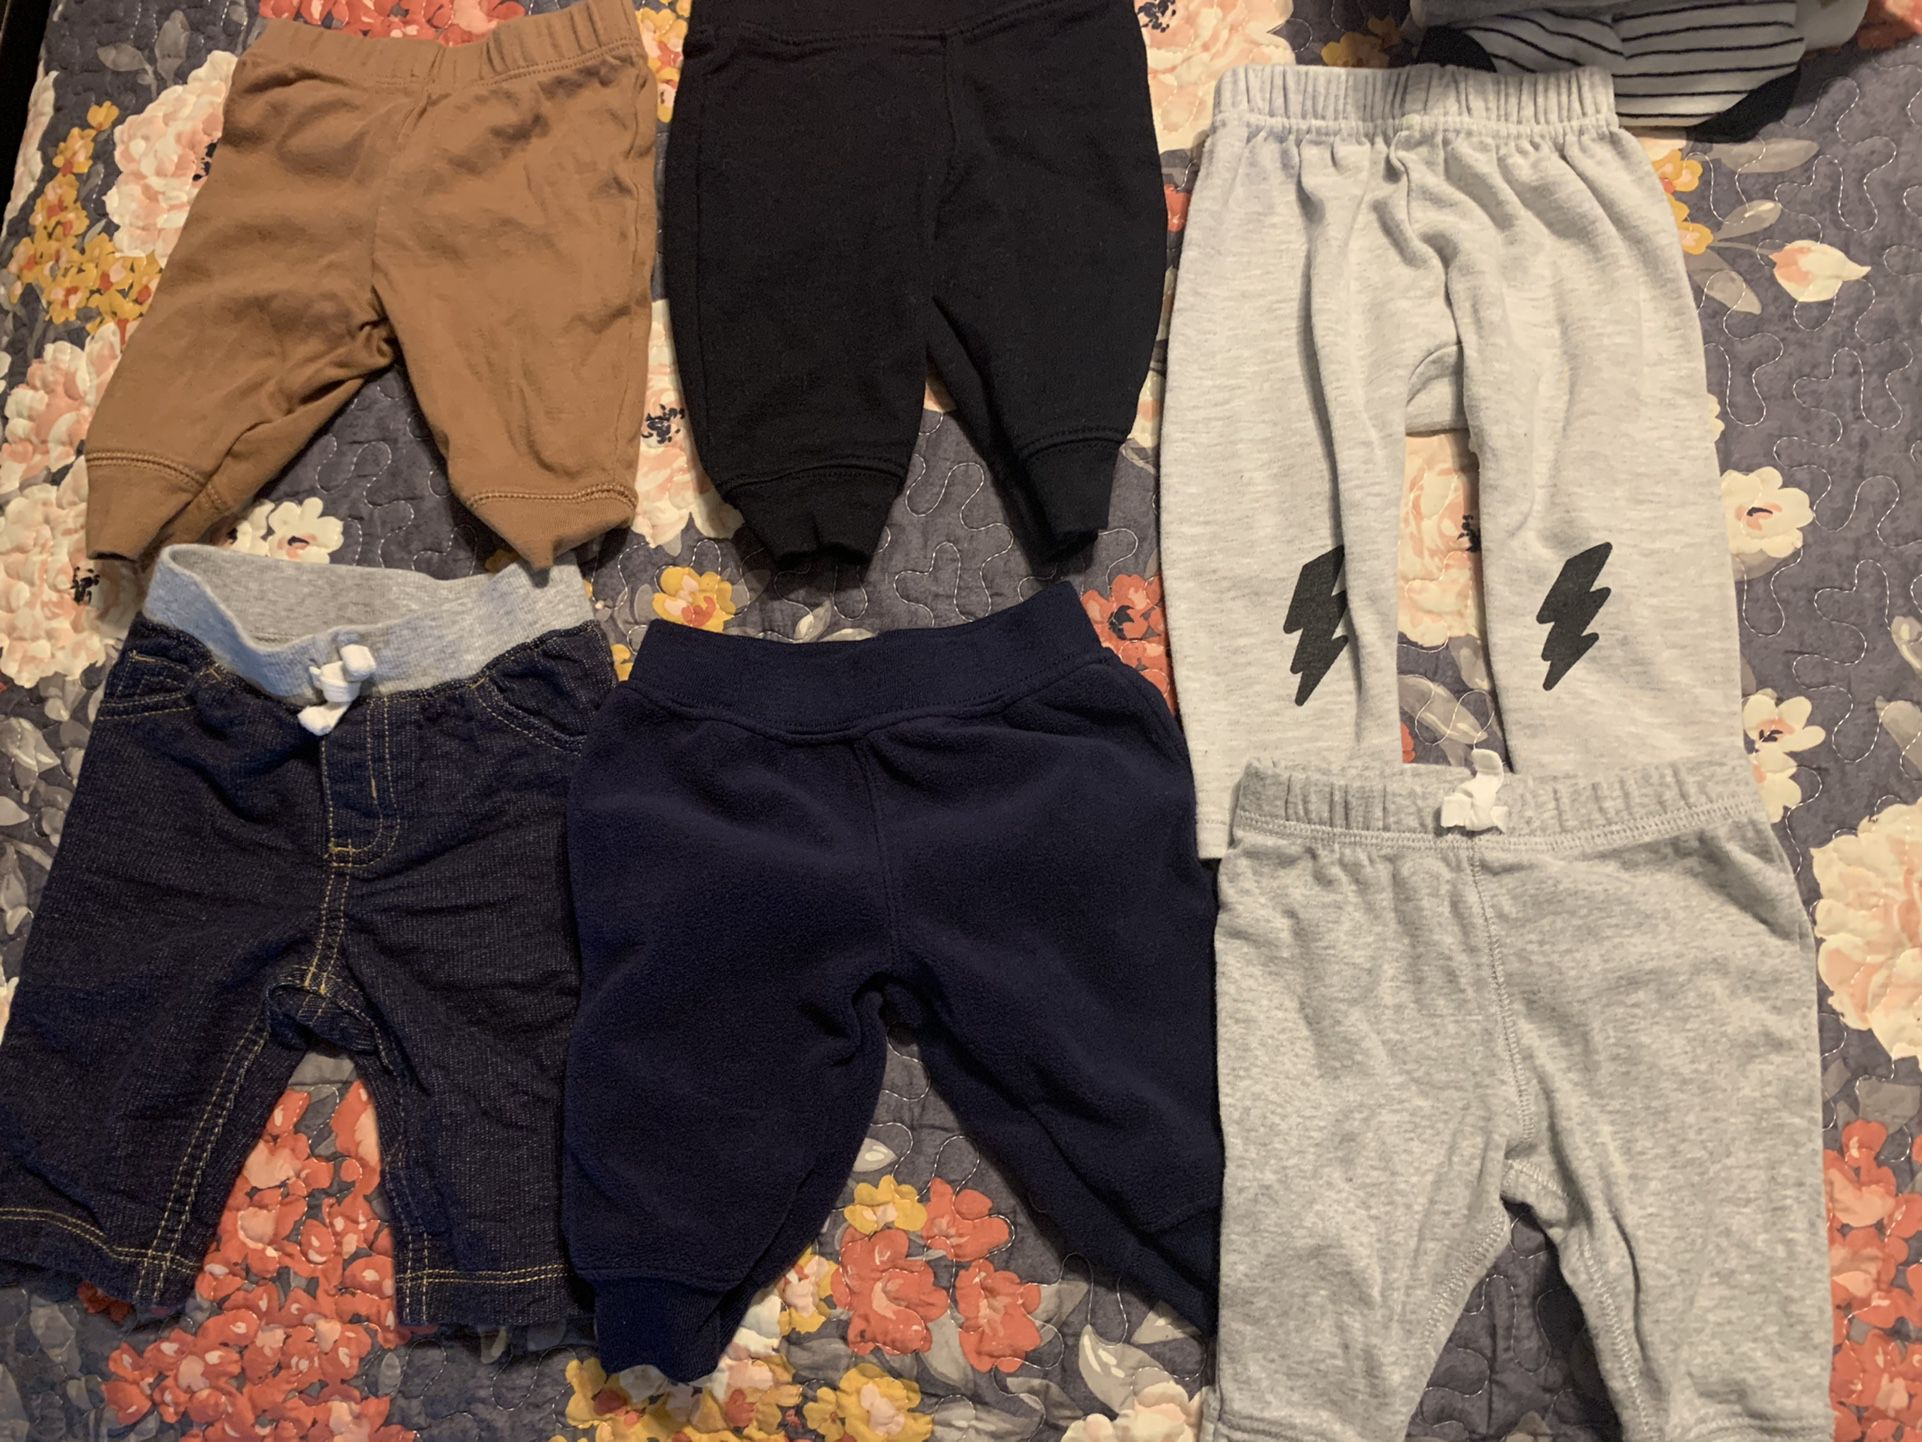 Baby Boy Clothes 0-3 Months